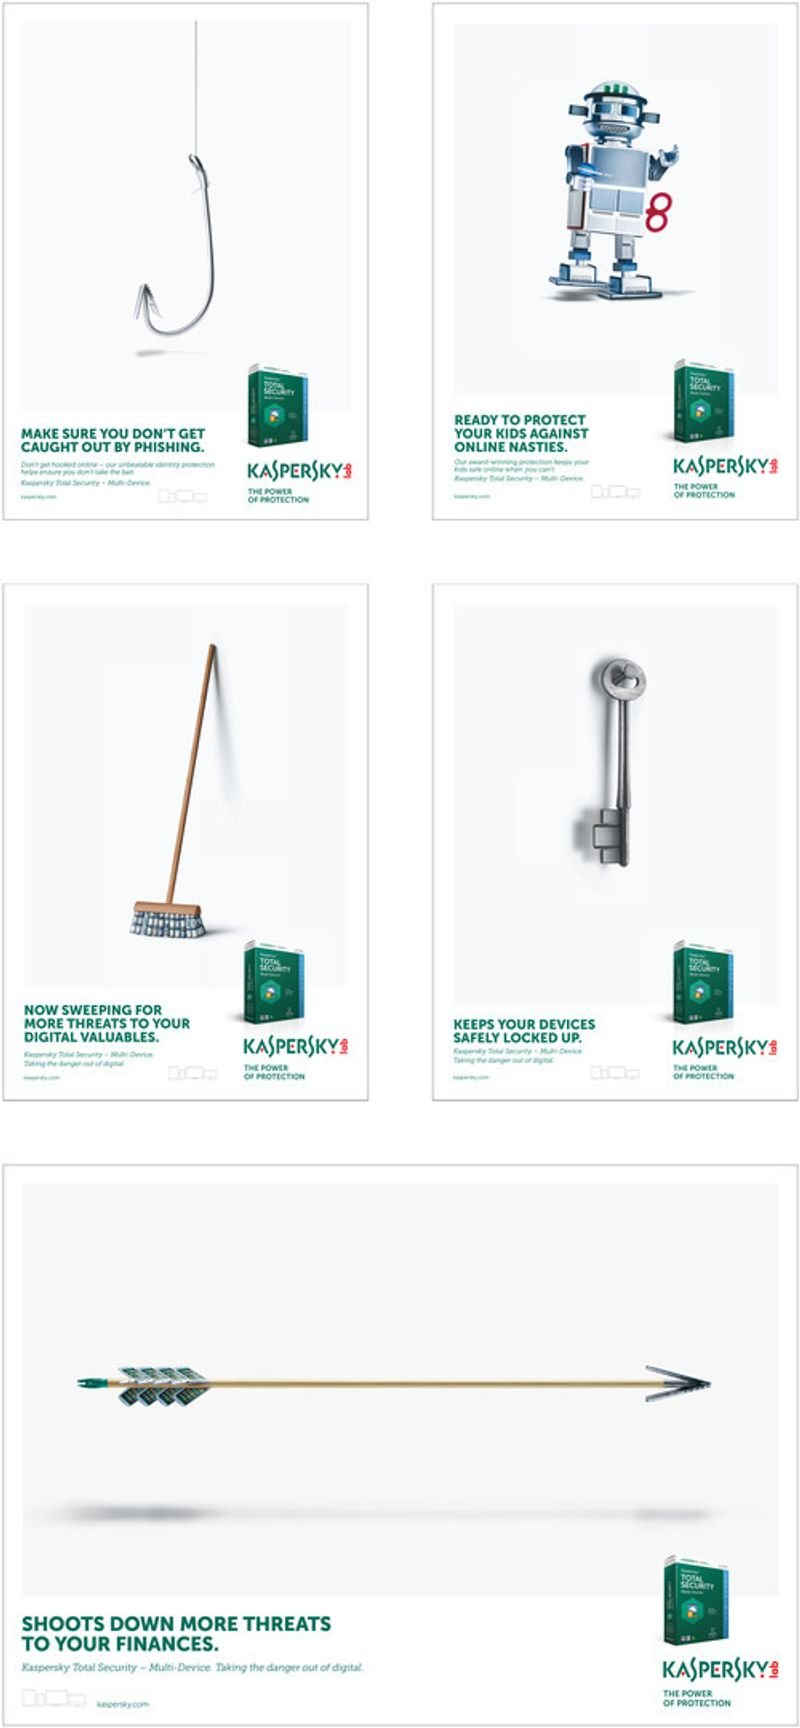 KASPERSKY - THE POWER OF PROTECTION